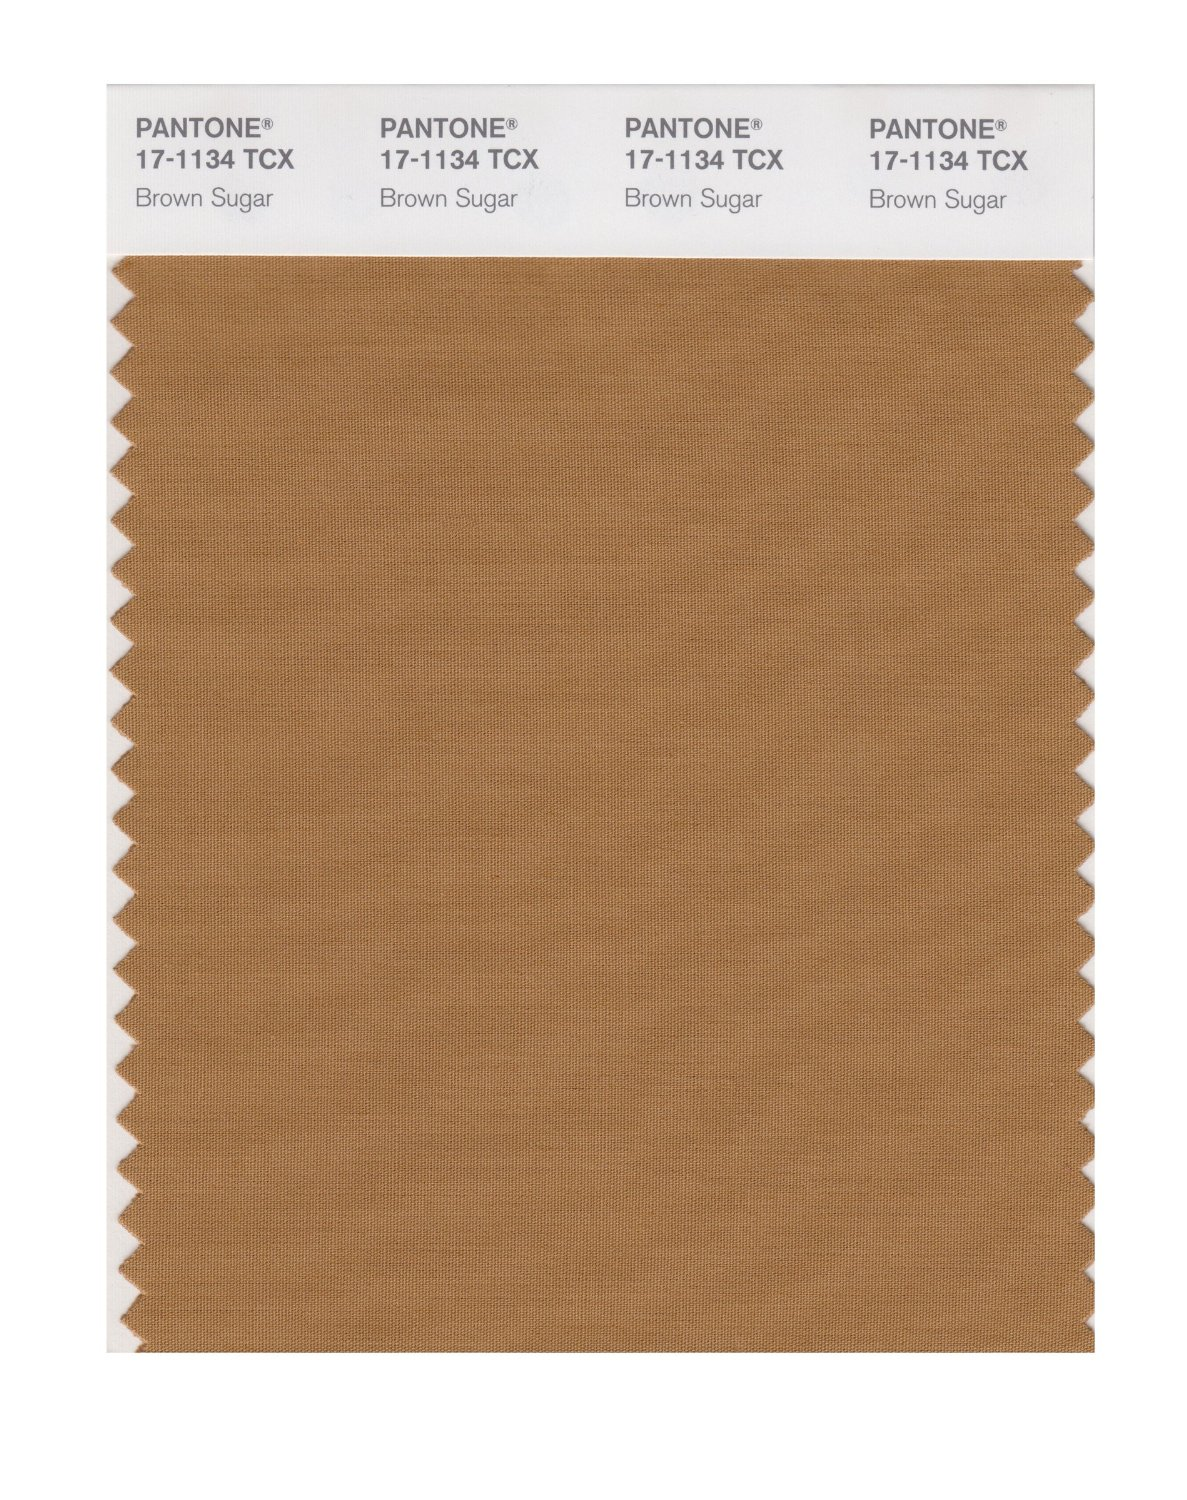 Pantone Smart Swatch 17-1134 Brown Sugar